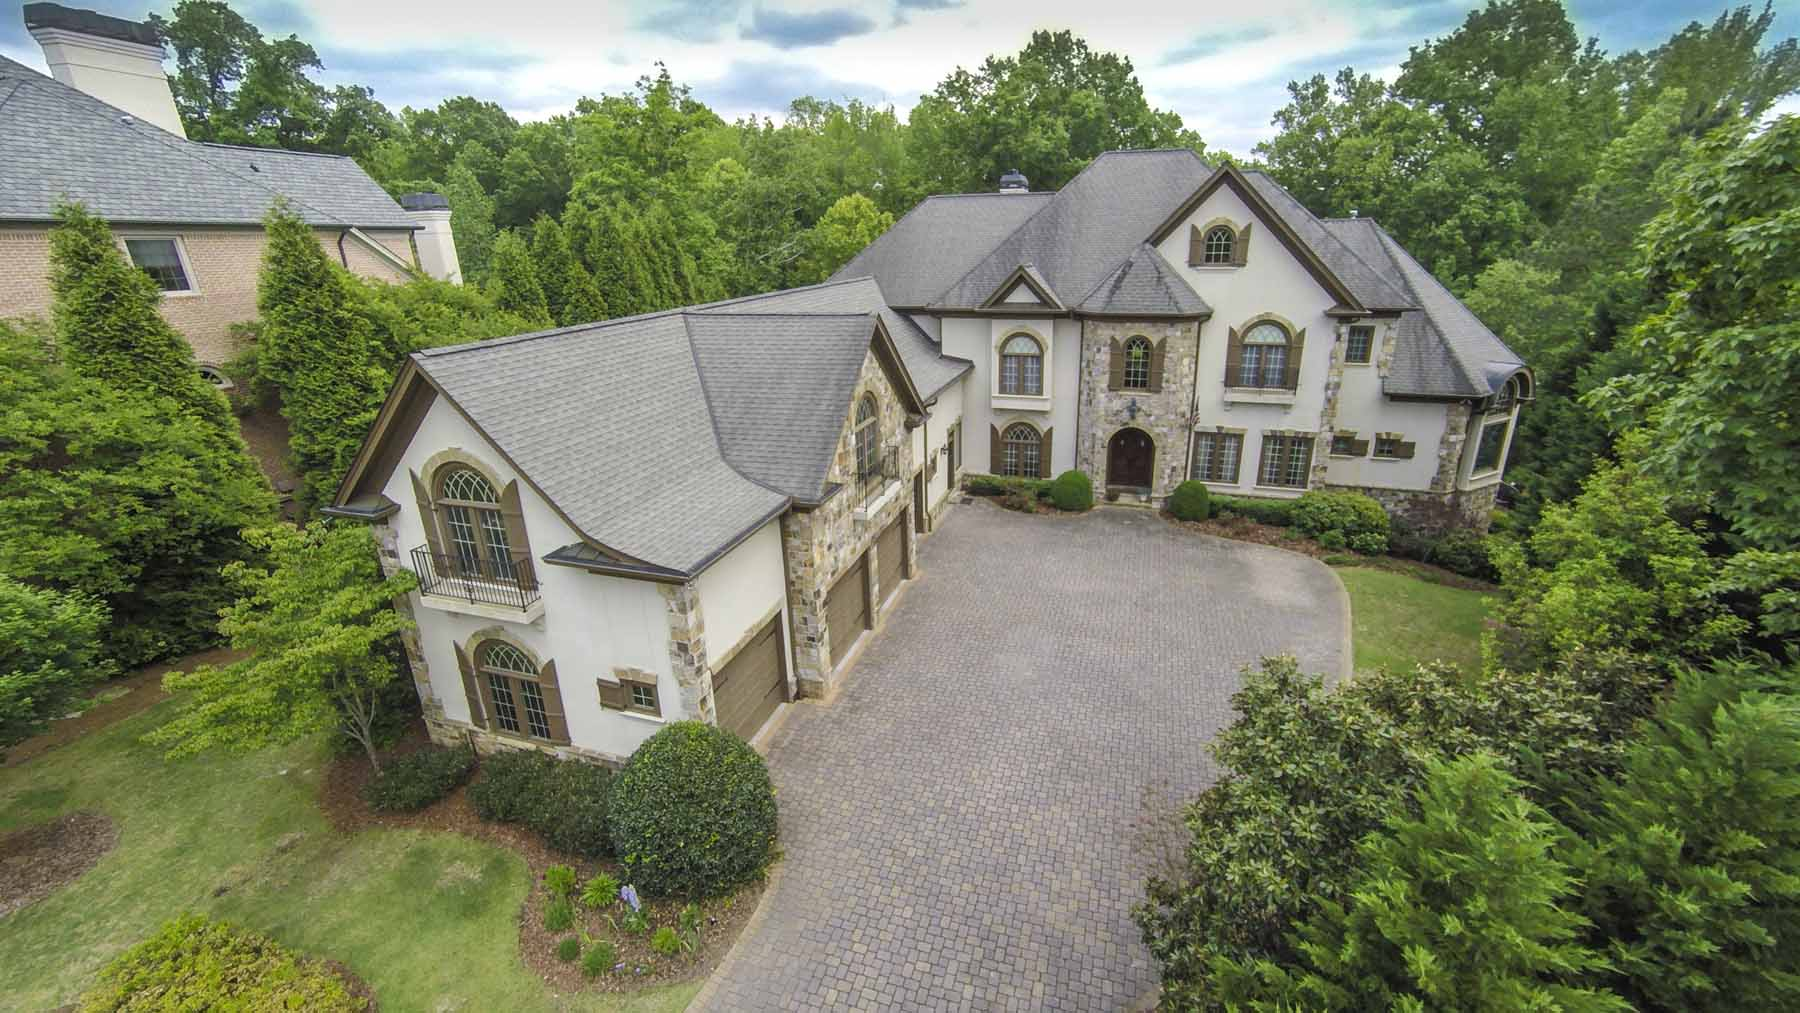 Maison unifamiliale pour l Vente à Stunning Home Meets Modern Updates on the Sparkling Chattahoochee River 500 Covington Cove Alpharetta, Georgia, 30022 États-Unis